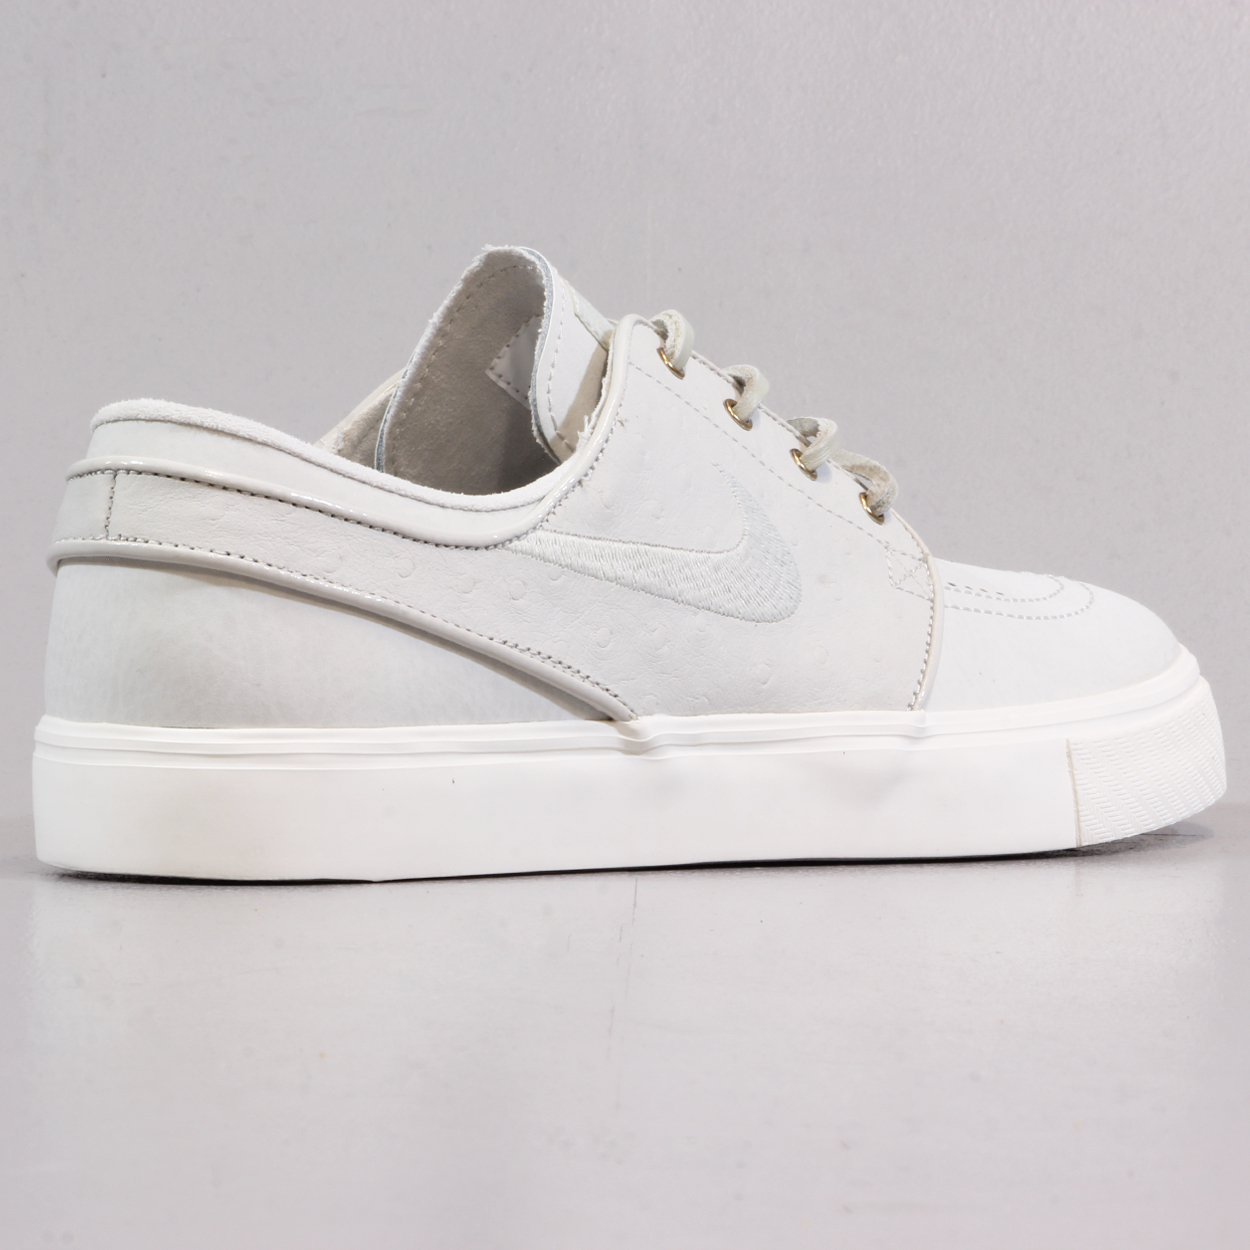 promo code f2450 7b266 Light bone, grey colourway adds a smart look to this classic Stefan Janoski  Premium shoe! Nike SB